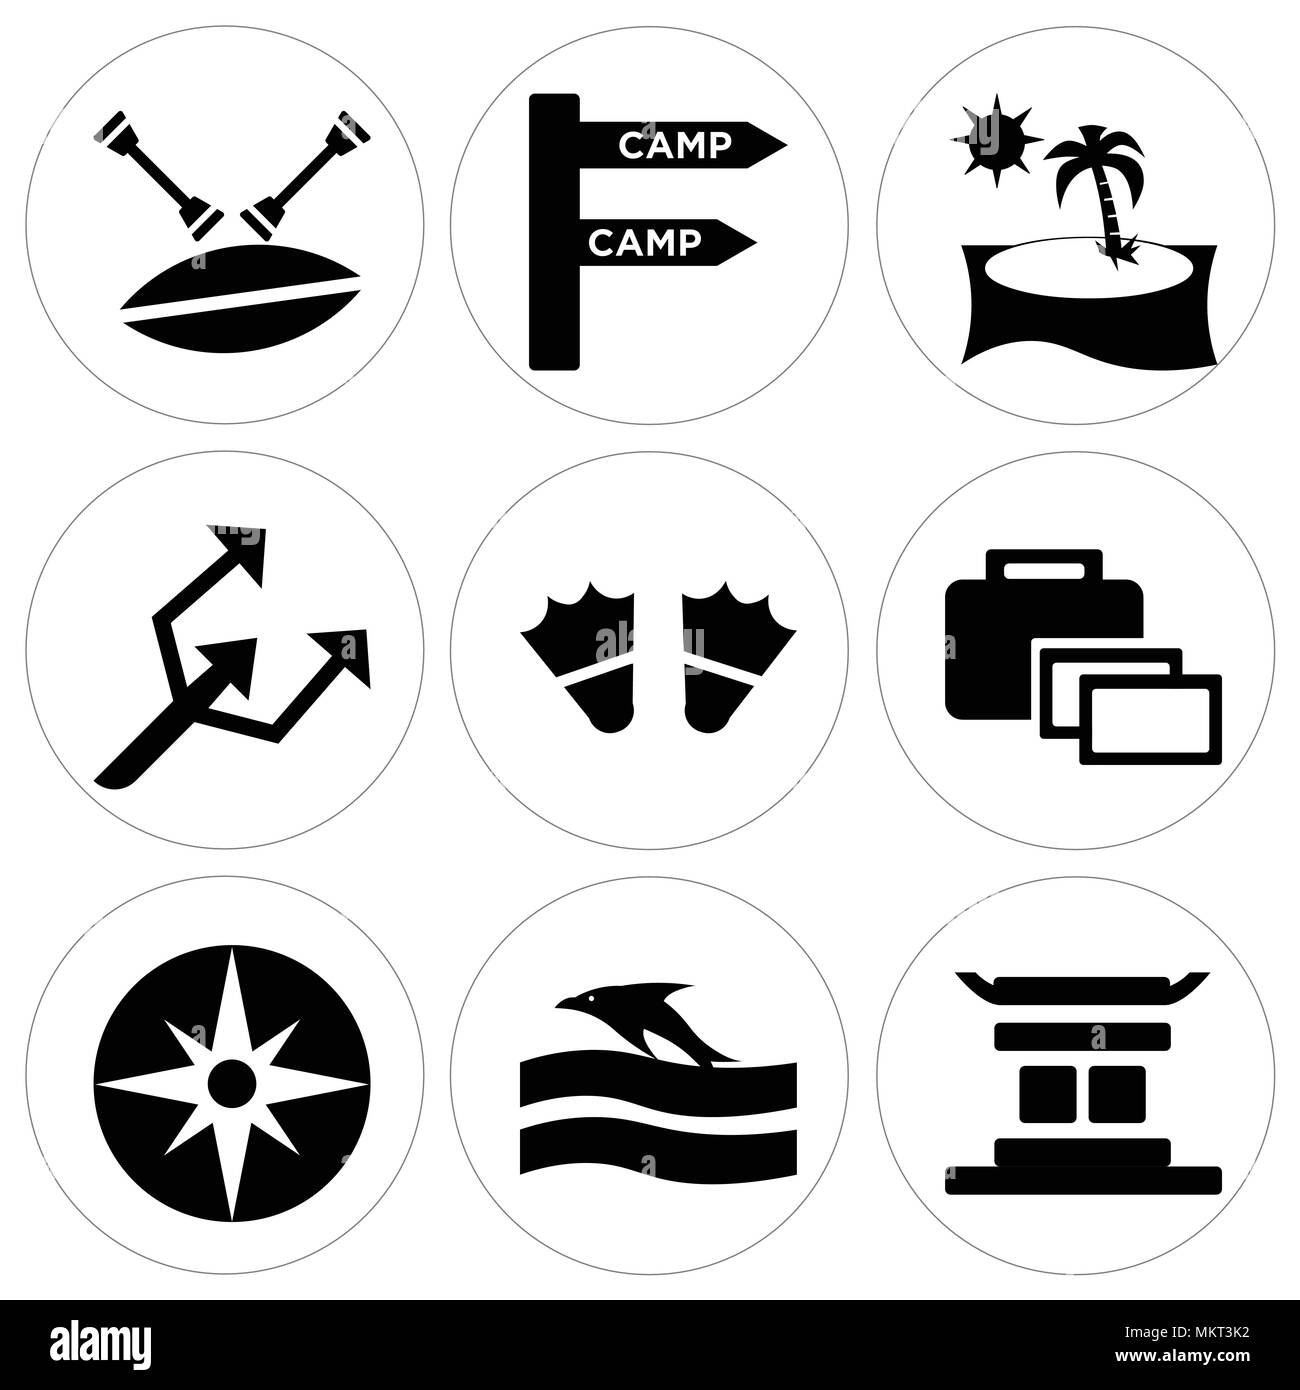 Set Of 9 simple editable icons such as Chinese temple, Sunset and Dolphin, Big Helm, Suitcase, Two Flippers, Small Trident, Beach Sunset, Camp, Canoe, - Stock Image